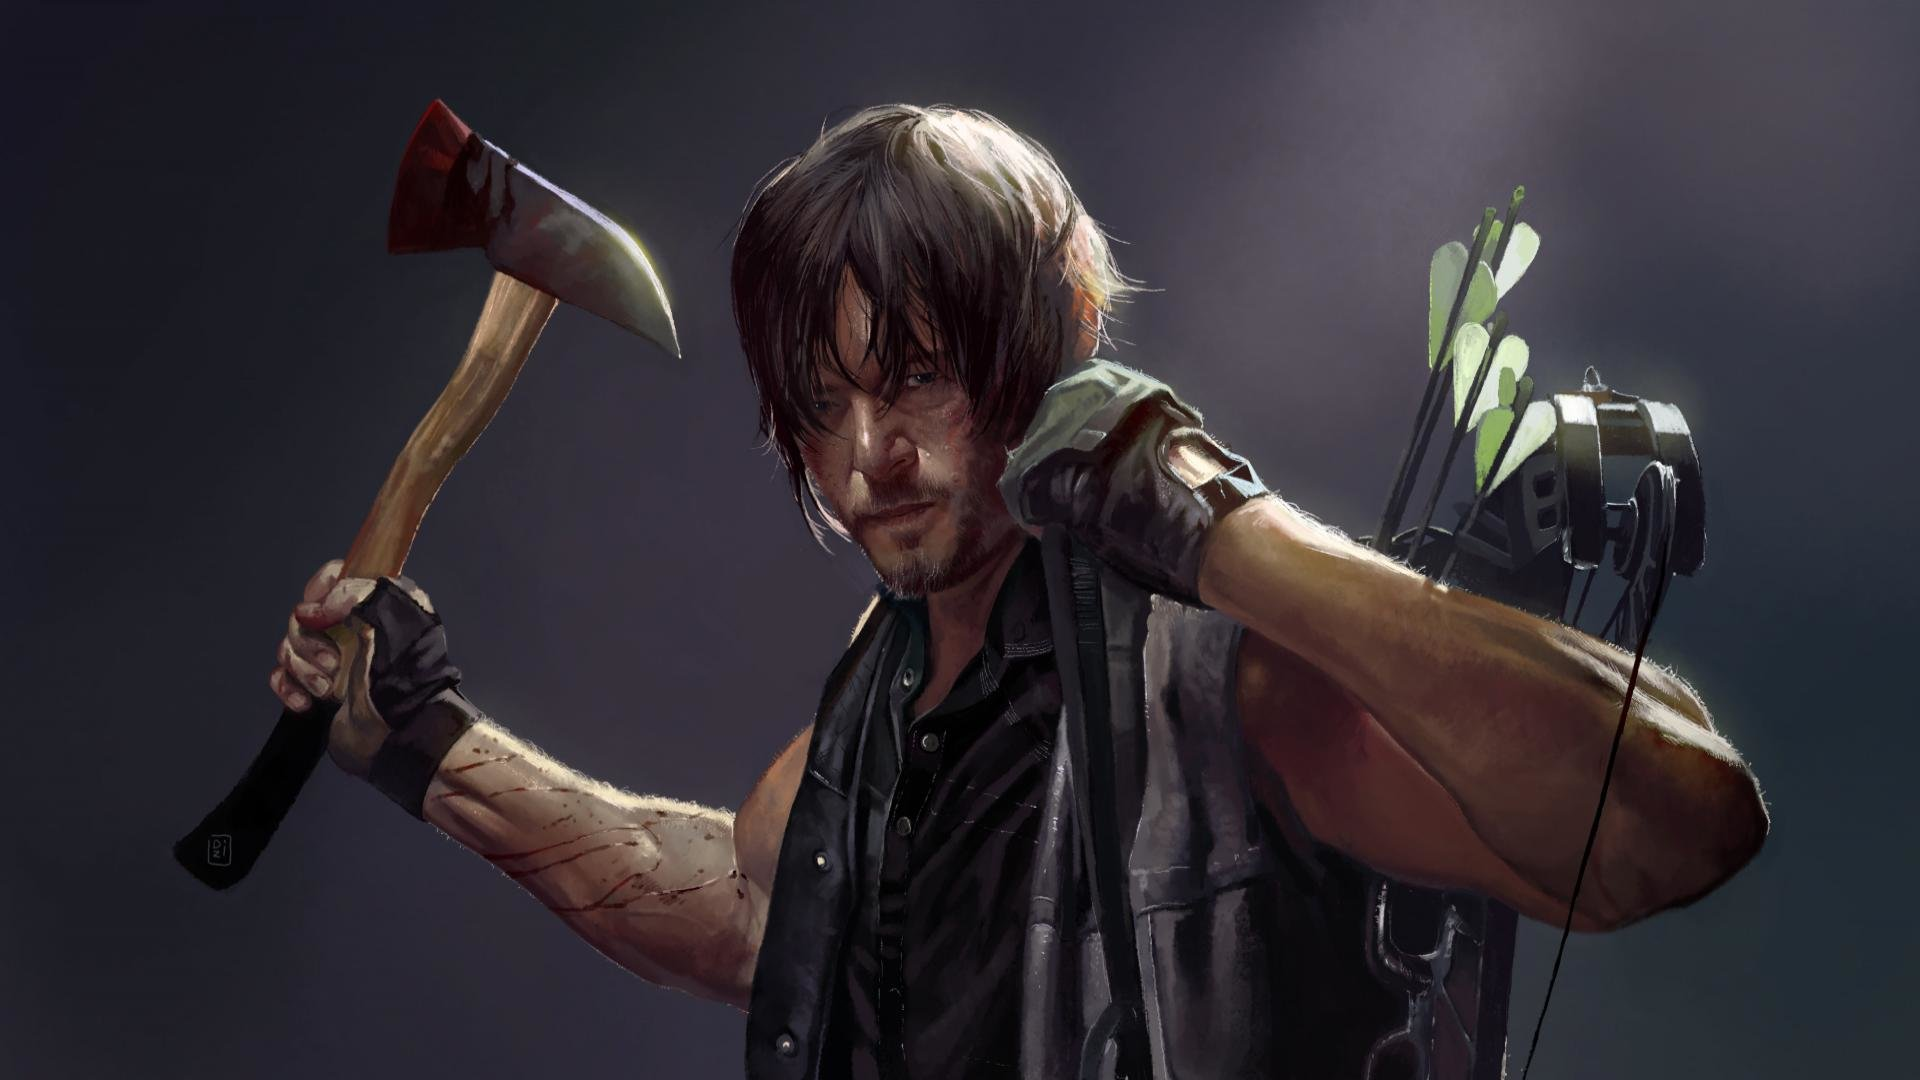 Download full hd Daryl Dixon PC background ID:190177 for free